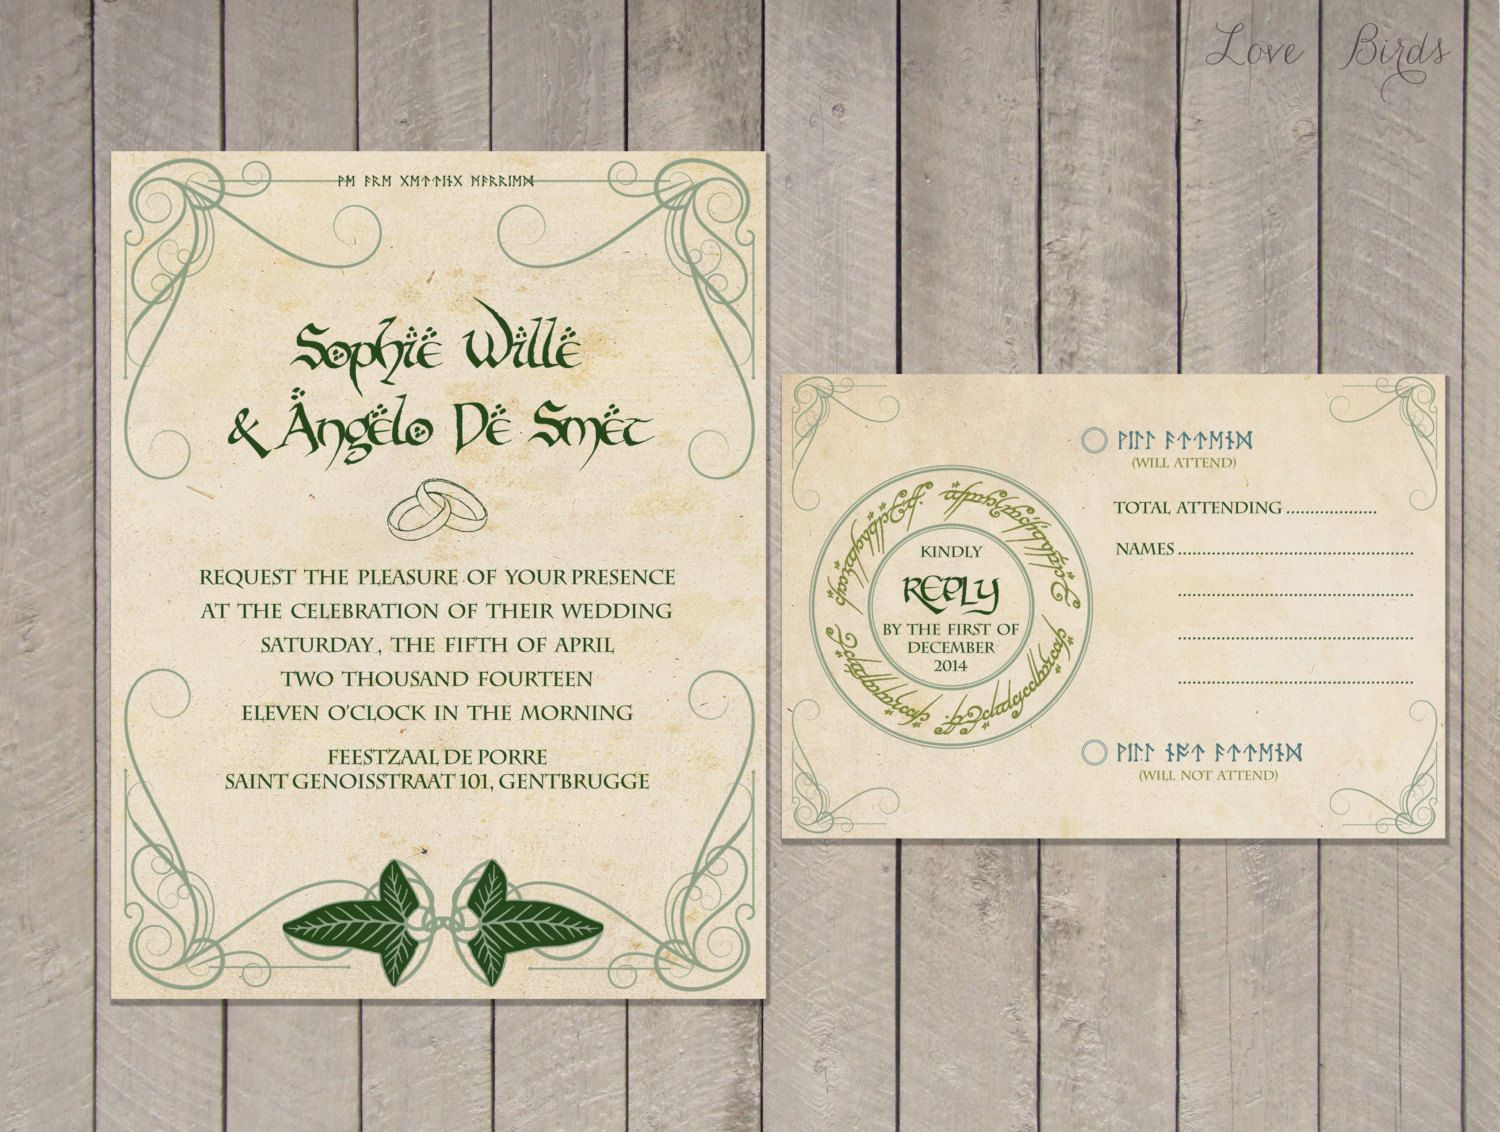 Lord of the Rings Wedding Invitations Part One Weddings Wedding